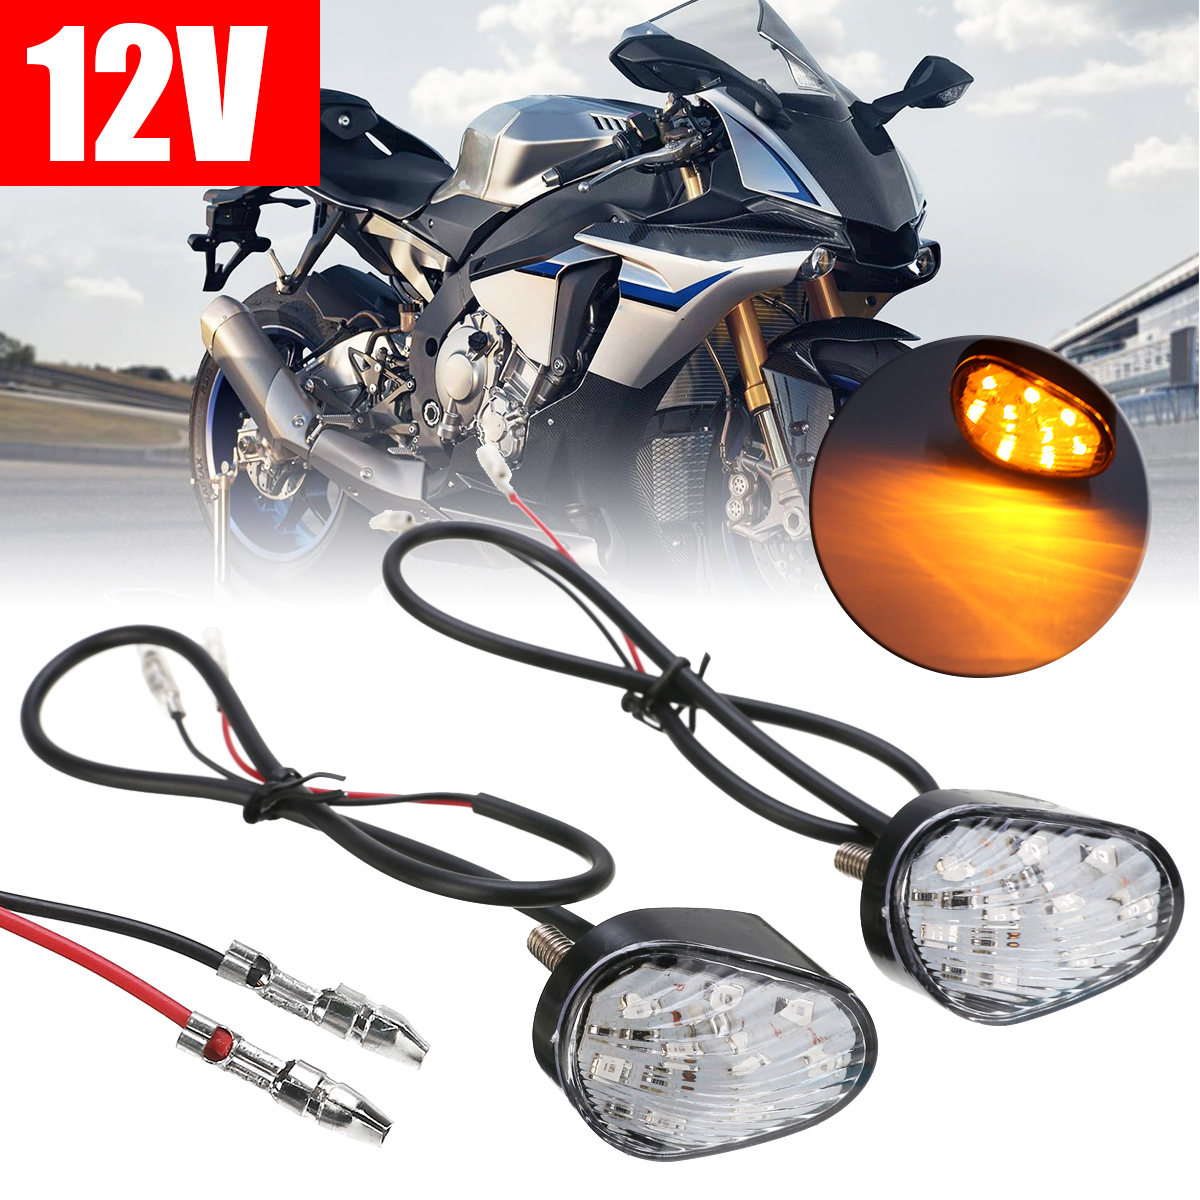 VGEBY1 Turn Signal Lights 1 Pair of Motorcycle 7//8 Handle Bar End 6 LED Signal Indicator